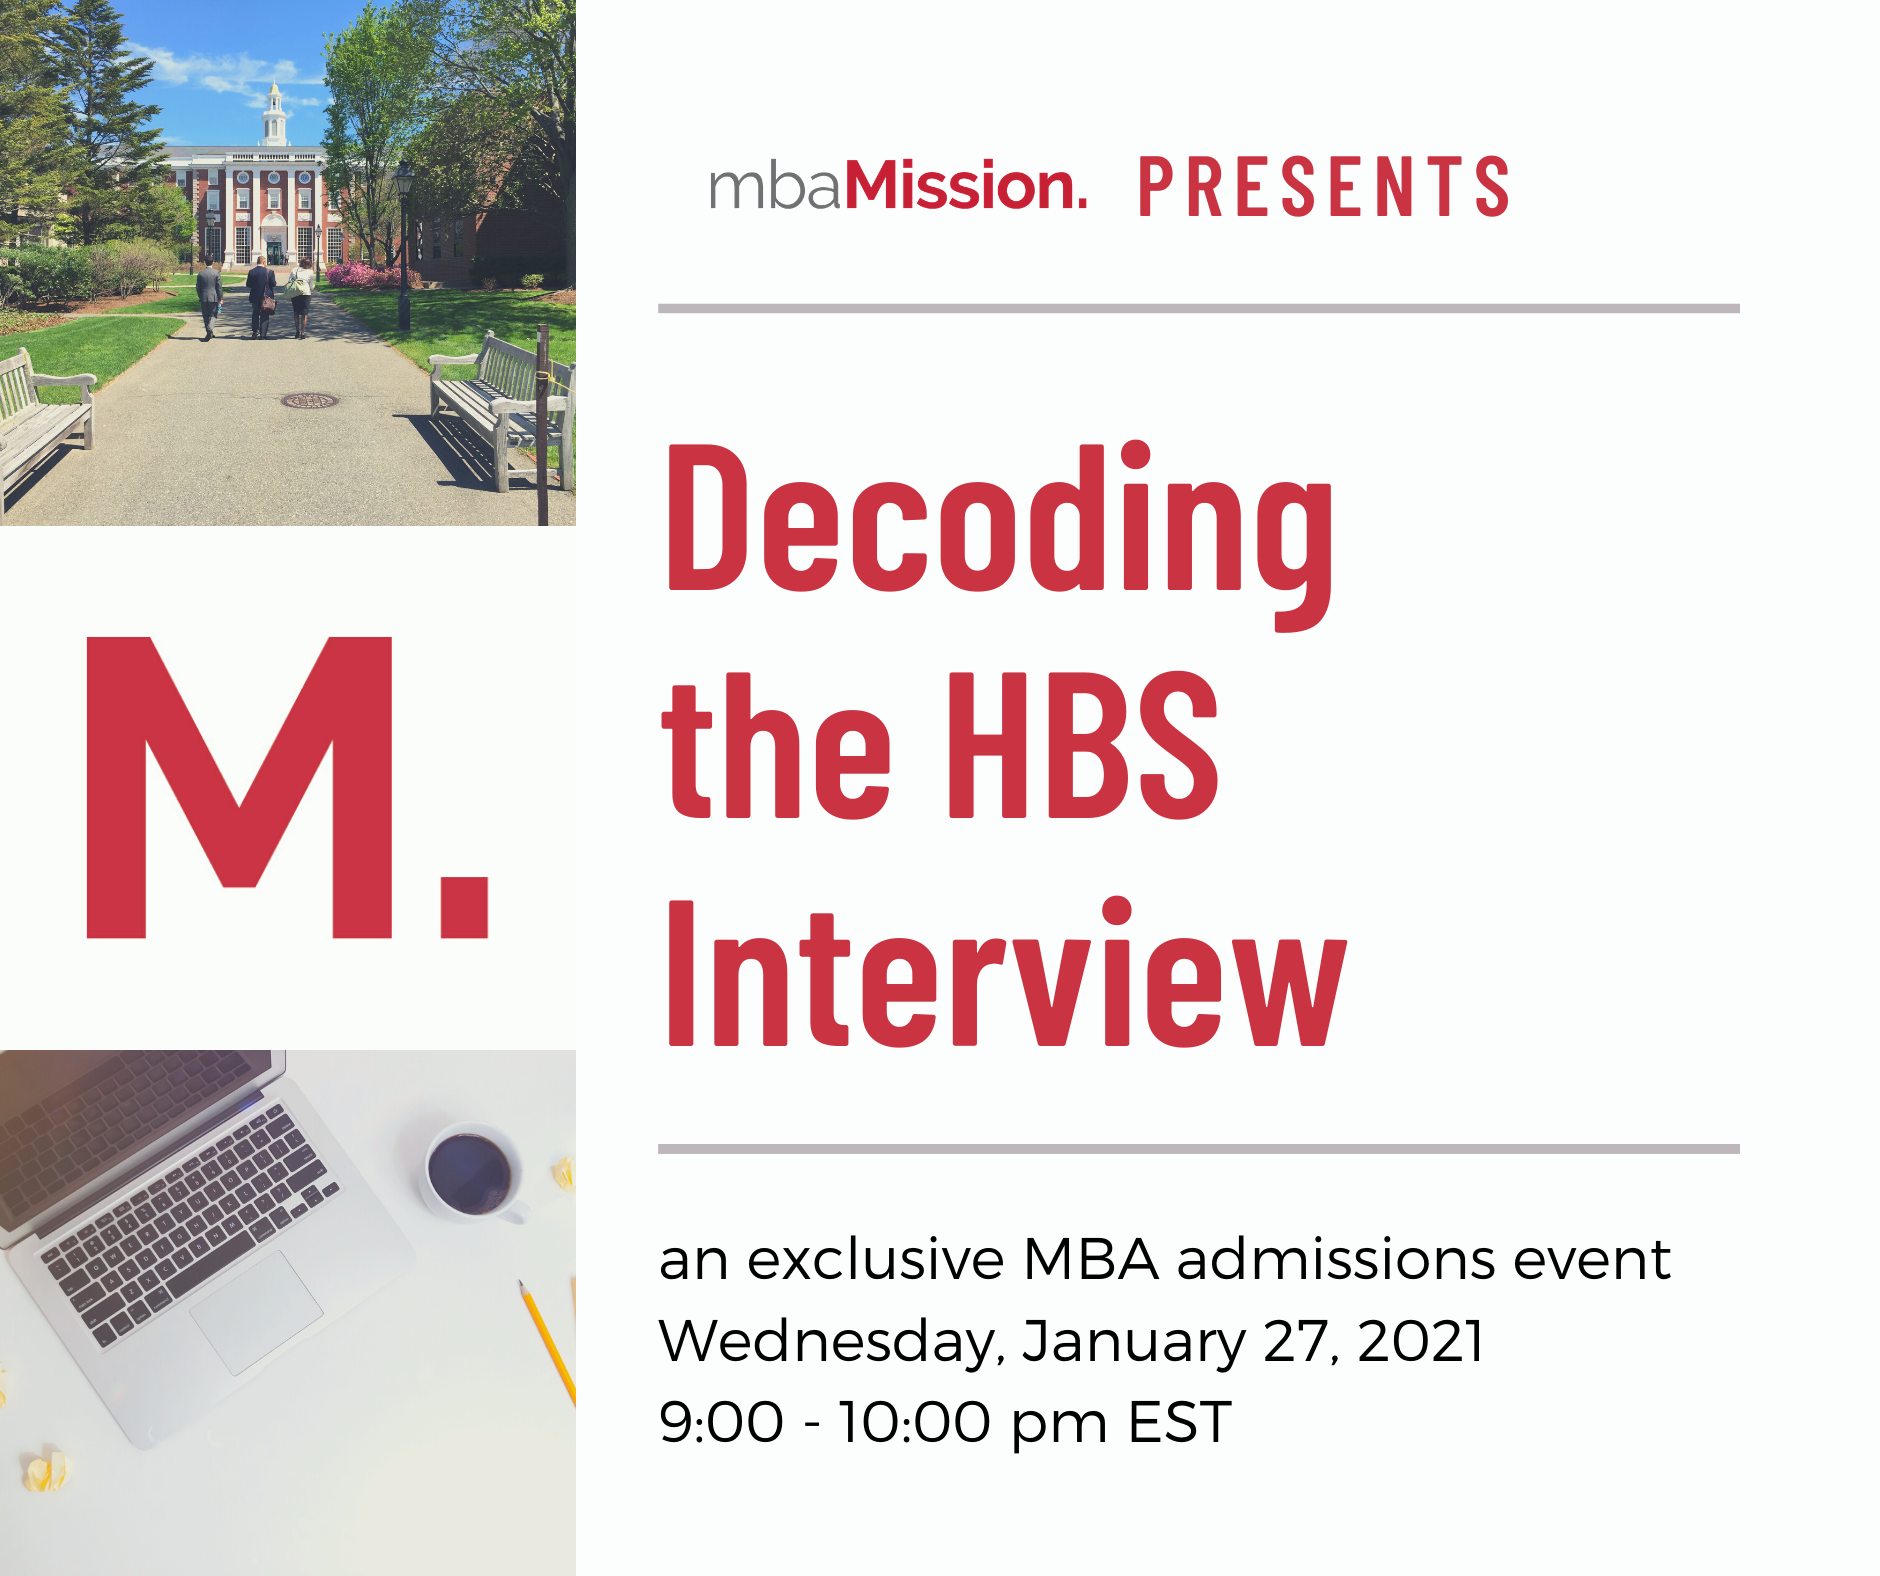 Decoding the HBS Interview: A New Webinar HBS Applicants